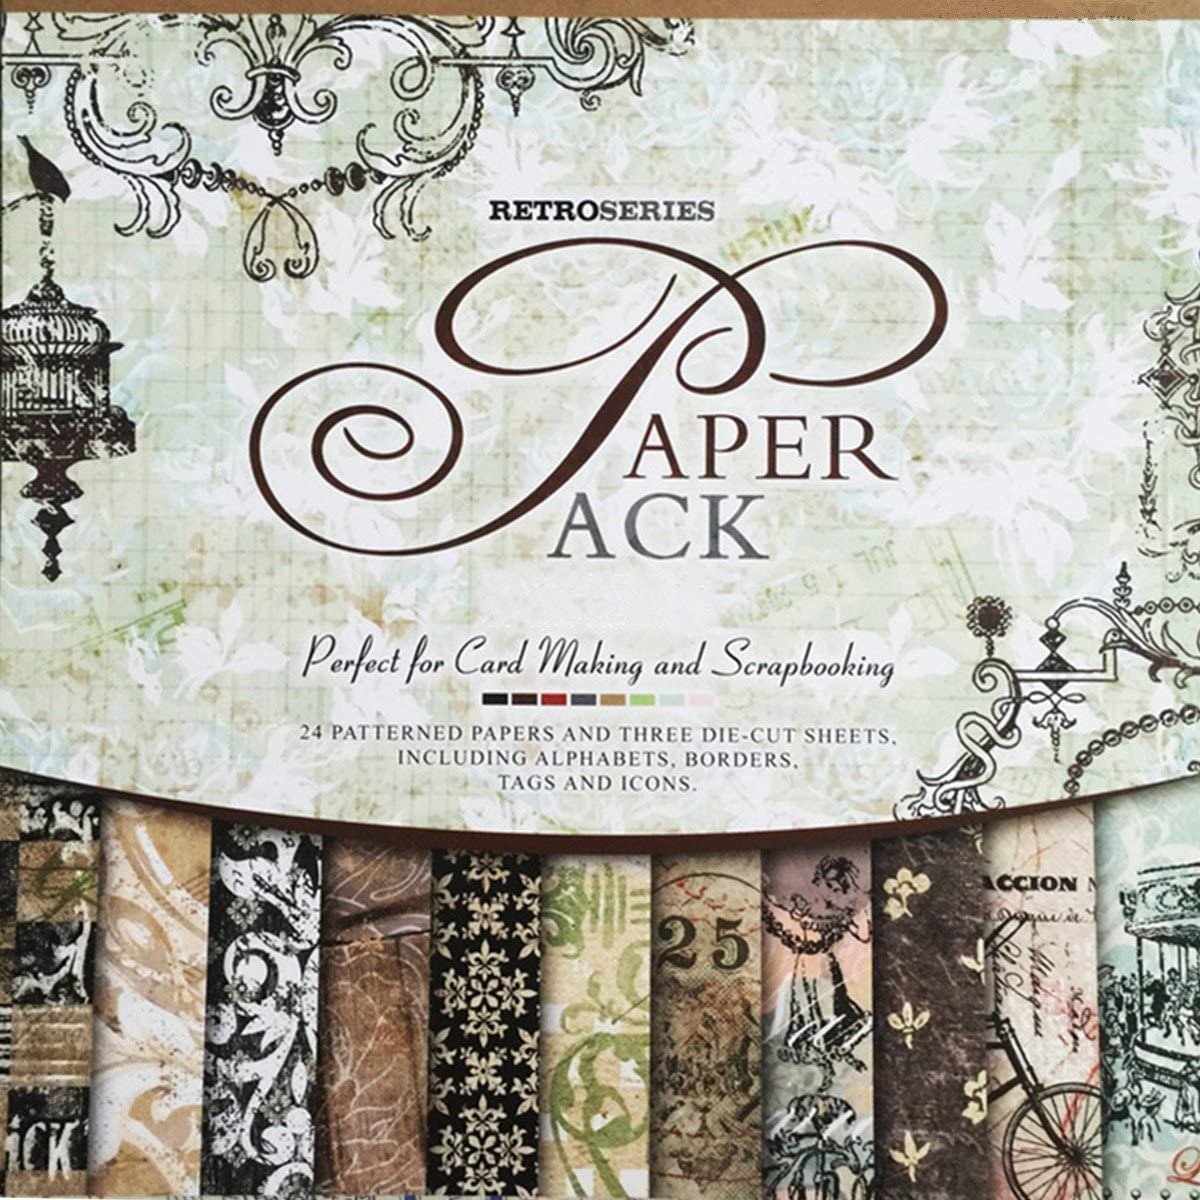 Handcrafted Art Flowers Lace Tans and Blacks Vintage Themed Scrapbook Page